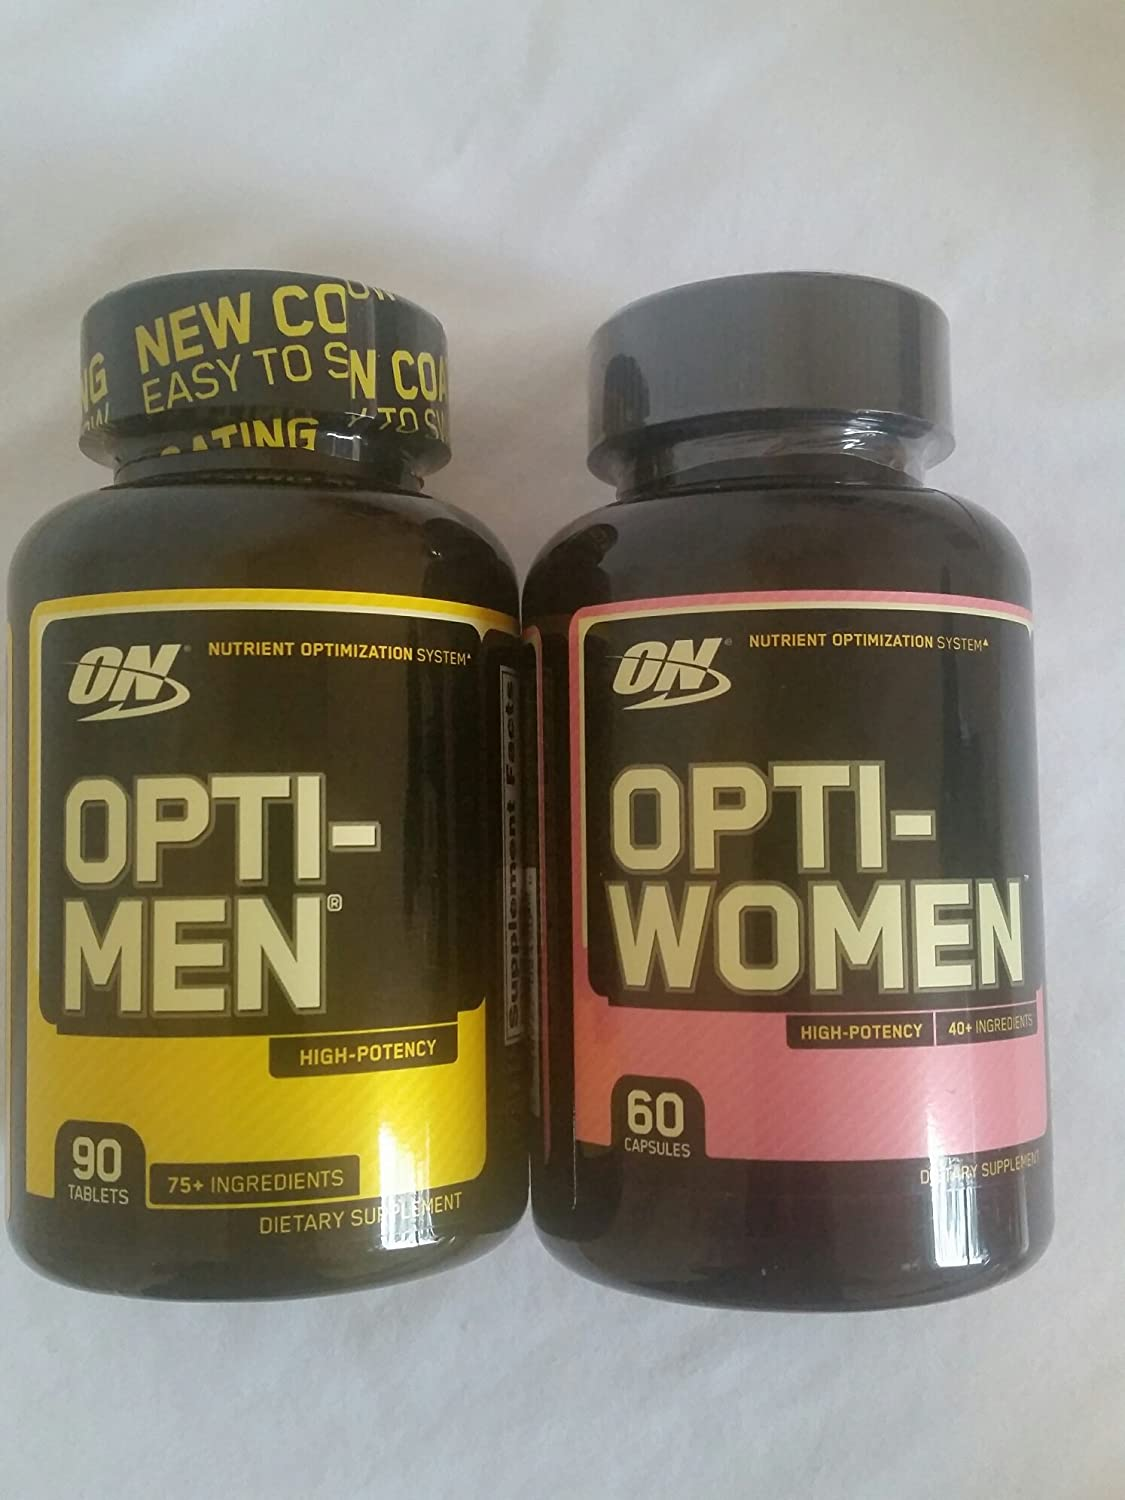 Optimum Nutrition Opti-Men and Opti-Women Combo Pack, Men s and Women s Multivitamin Opti-Men 90 Tablets and Opti-Women 60 Capsules